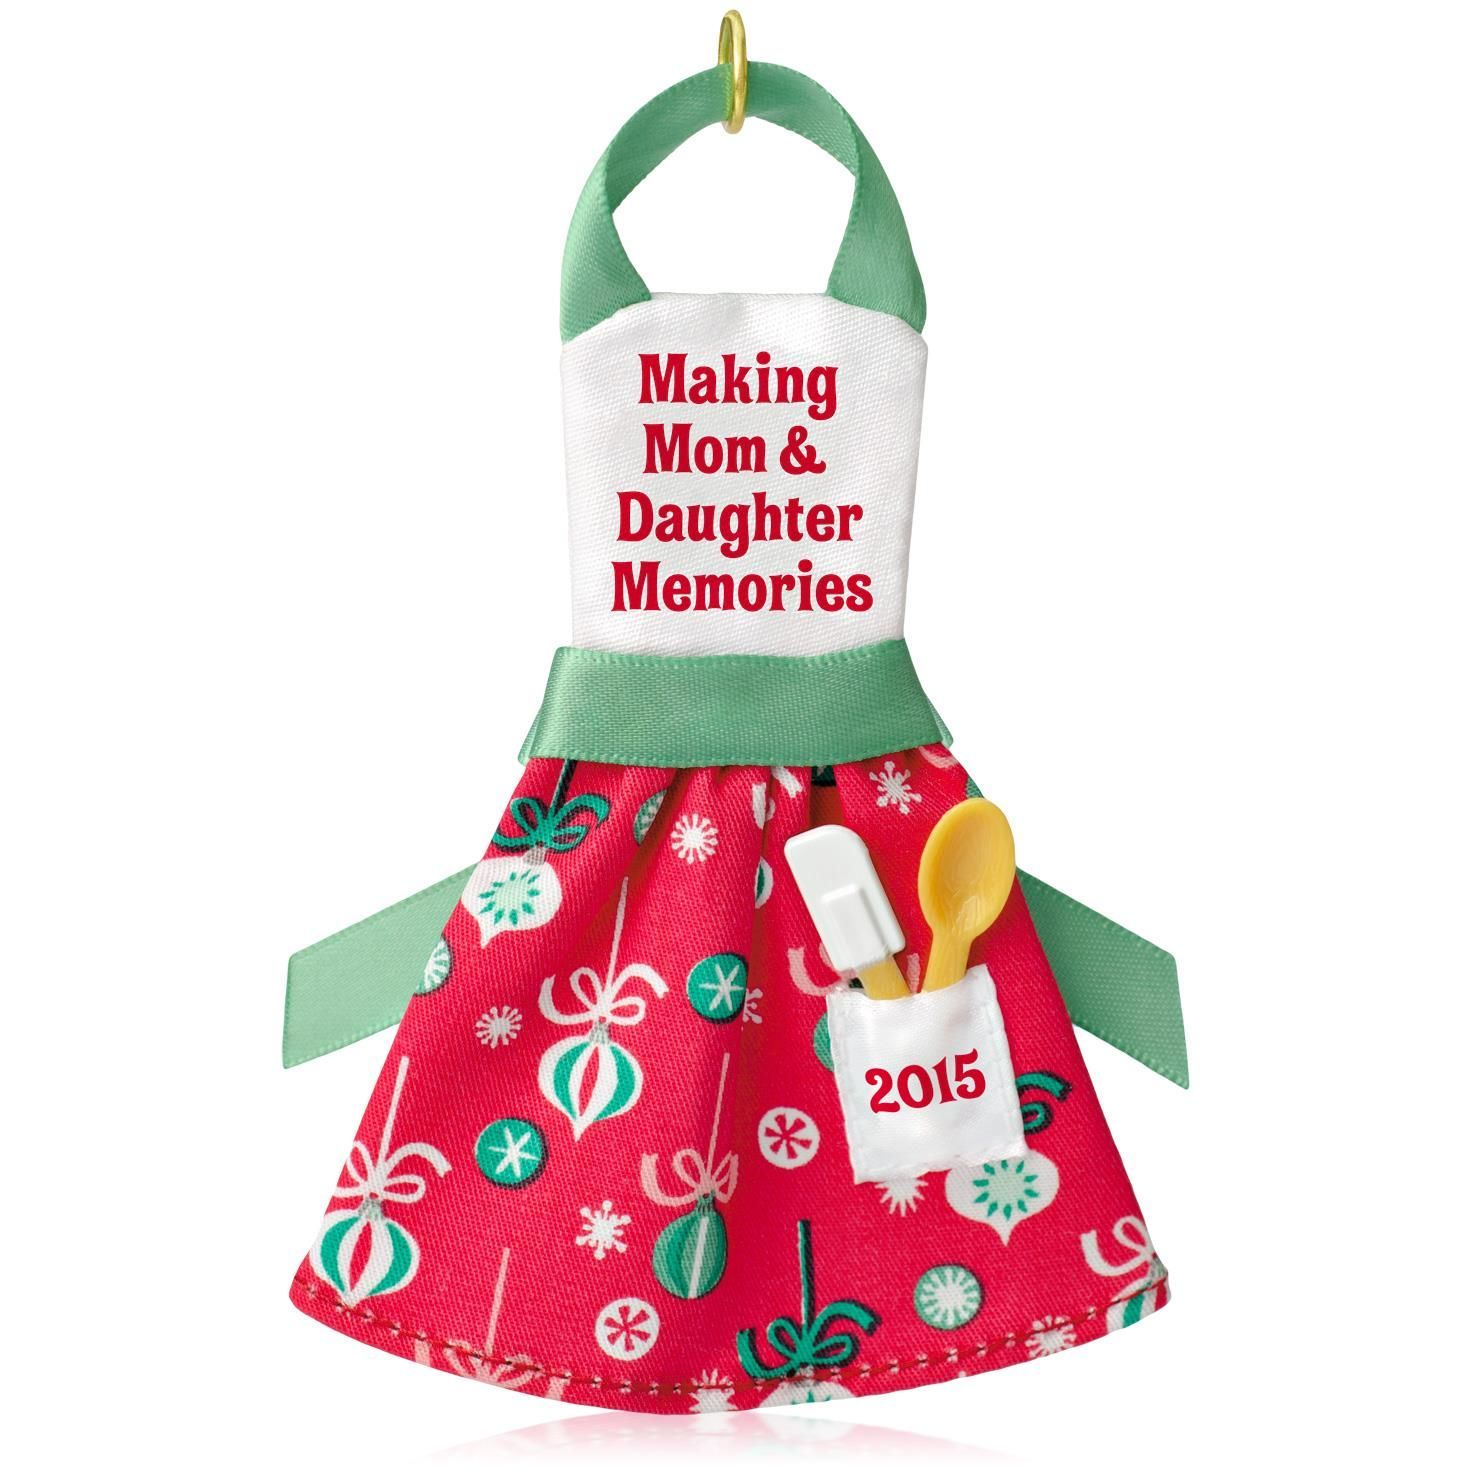 2015 Mom And Daughter Memories Hallmark Keepsake Ornament  Hooked